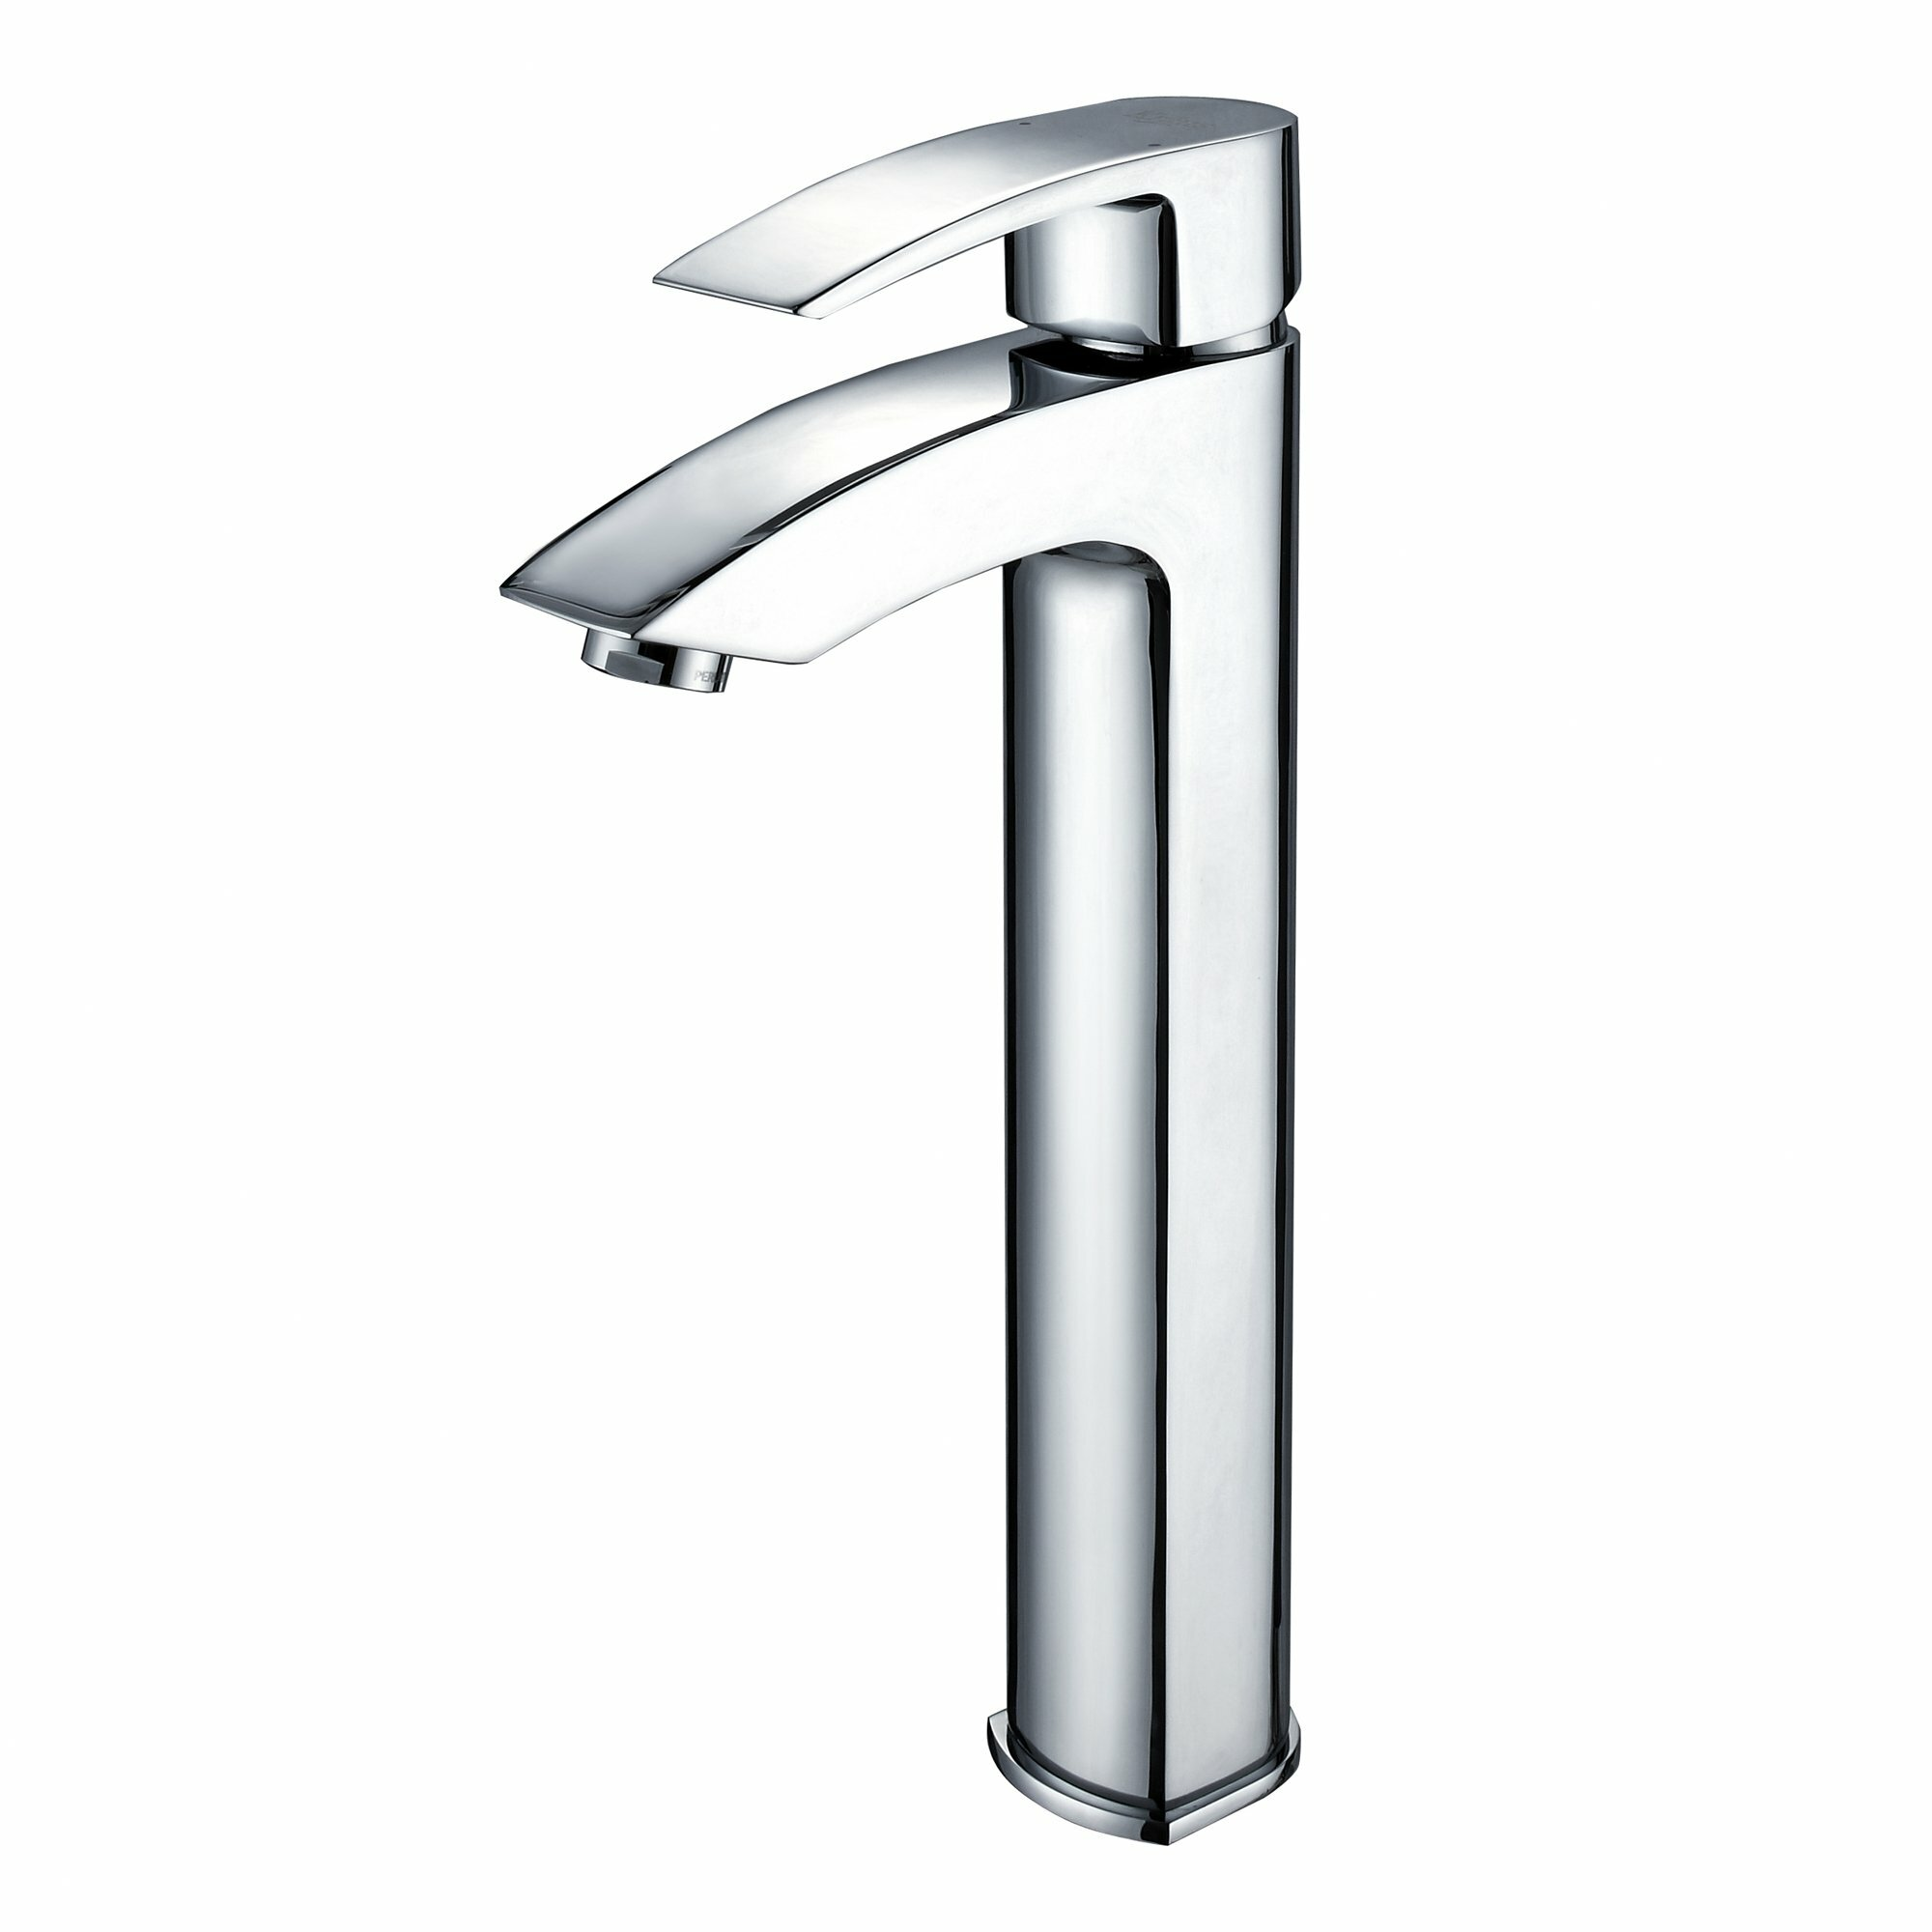 Kraus Faucets Reviews : Kraus Crystal Clear Glass Vessel Sink and Visio Faucet & Reviews ...